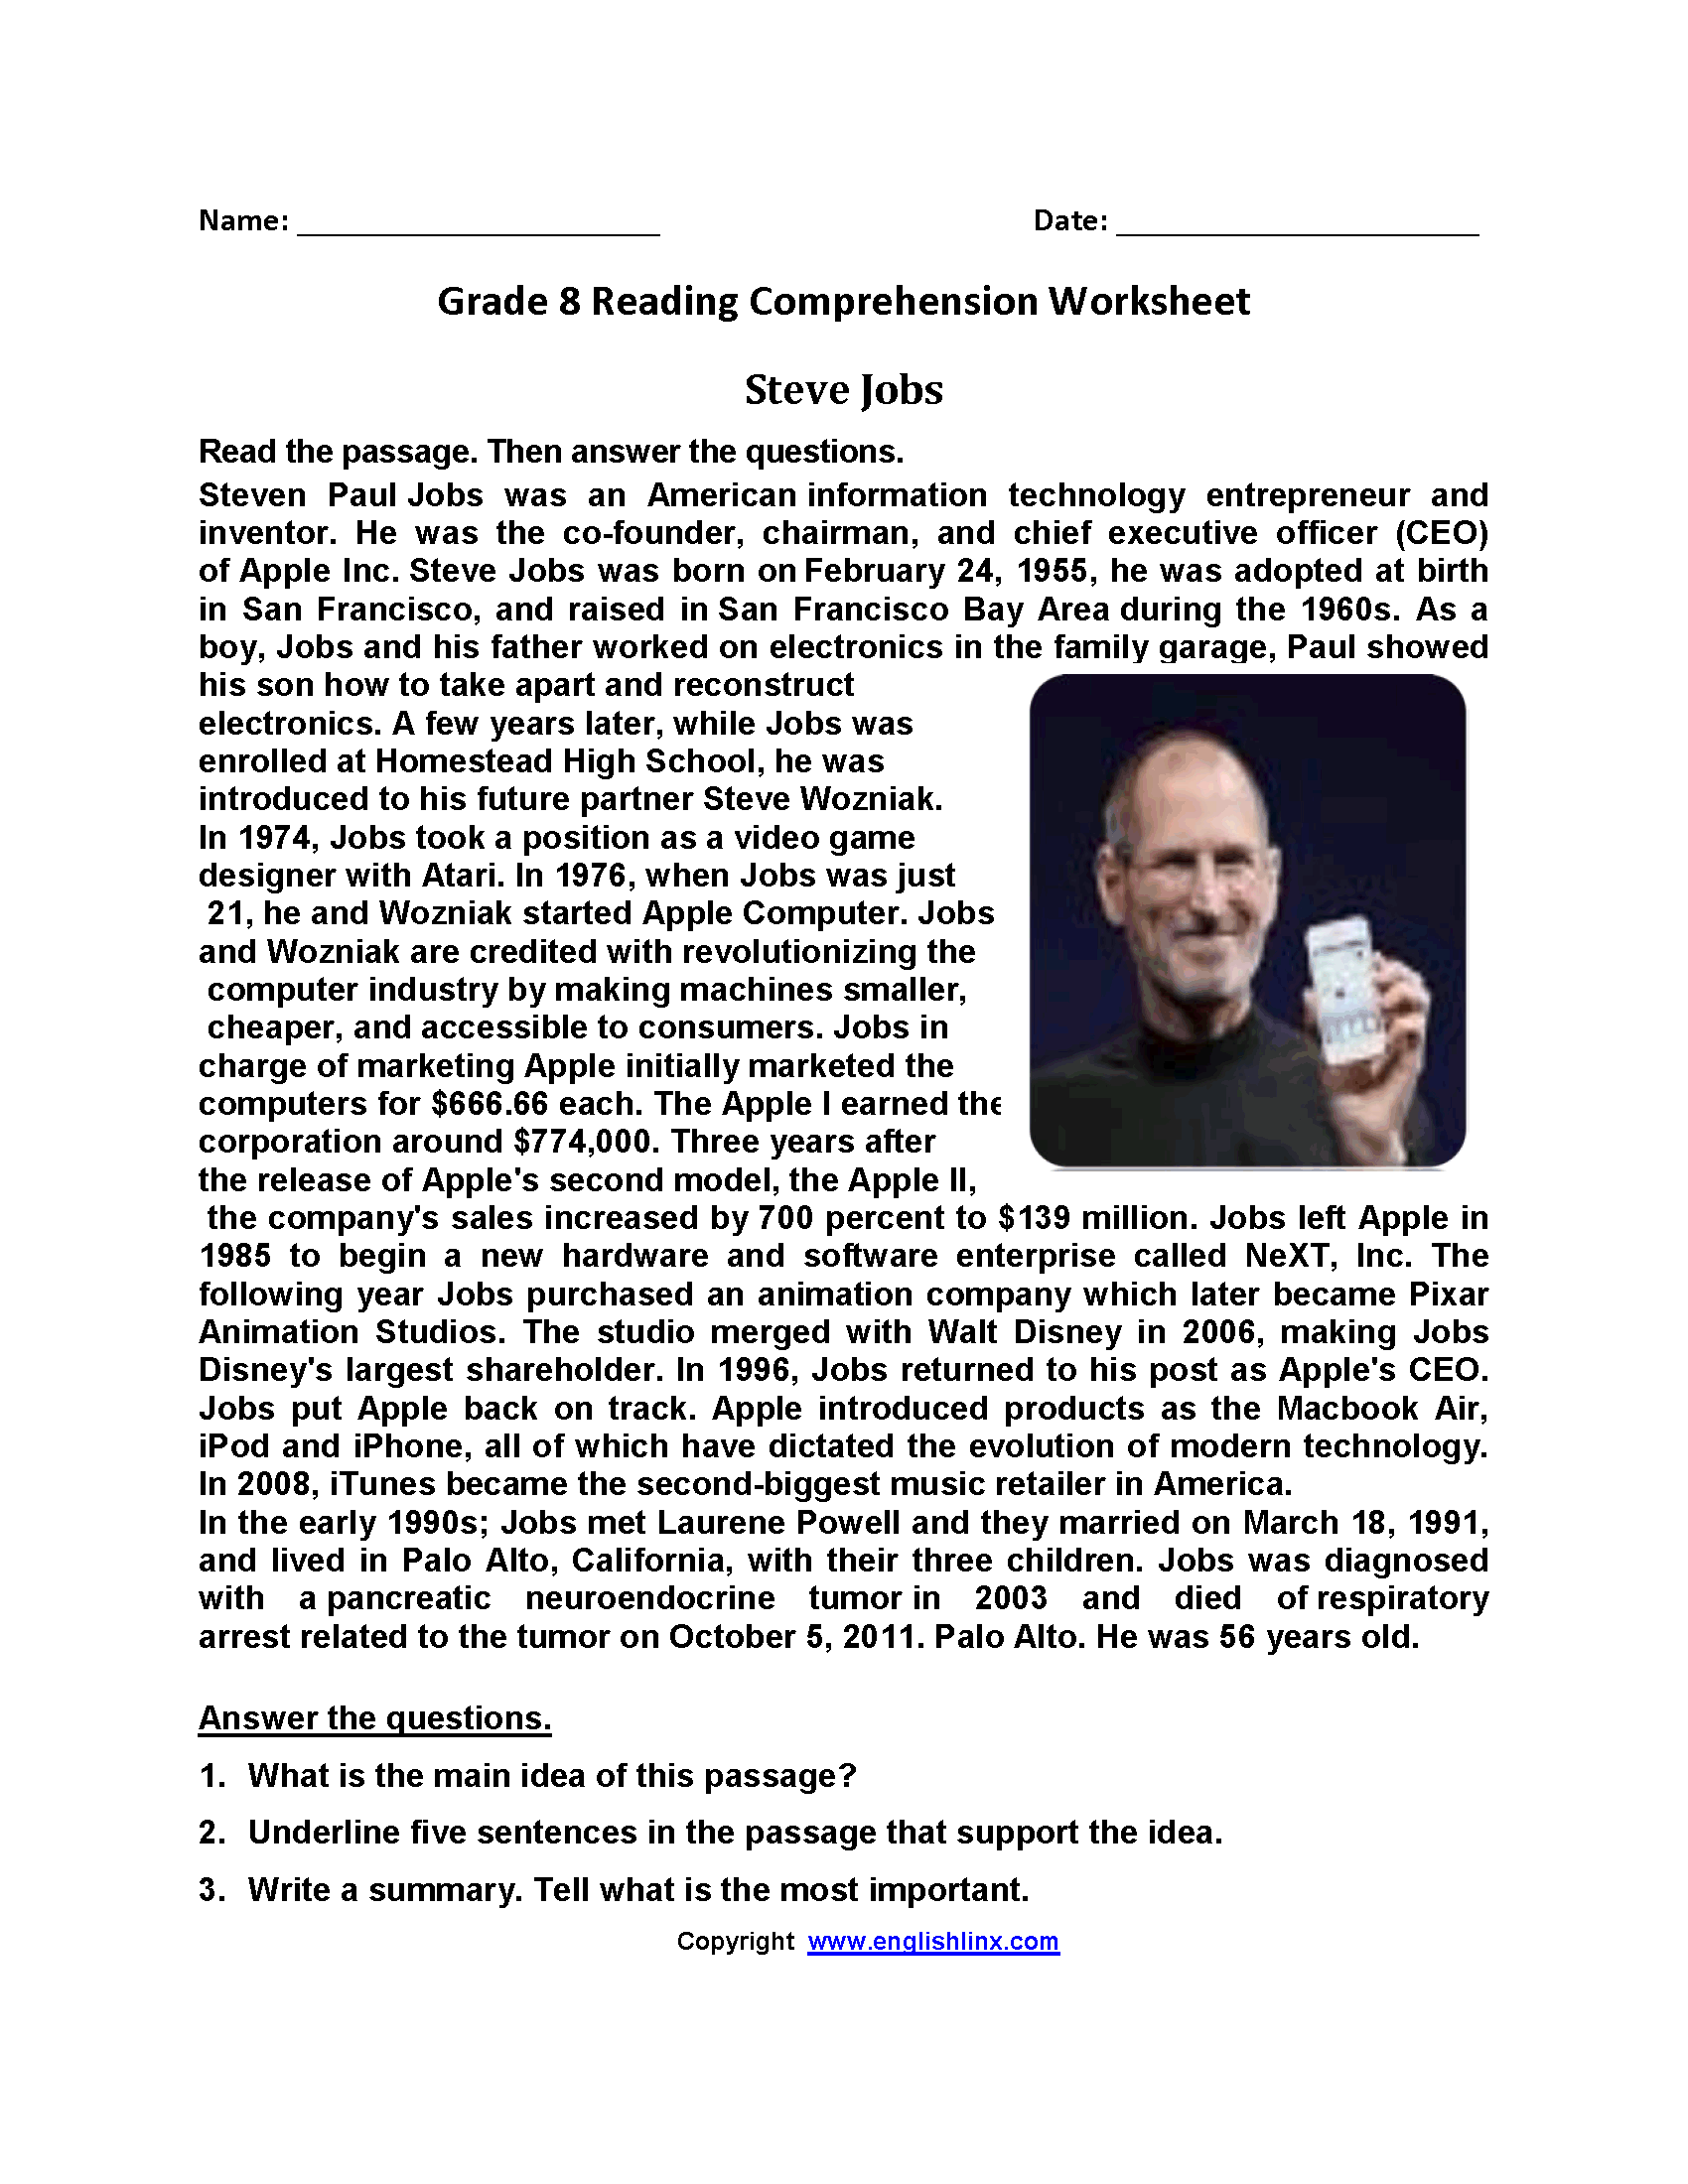 Worksheets Reading Comprehension Worksheets 8th Grade steve jobs eighth grade reading worksheets 8th wks worksheets